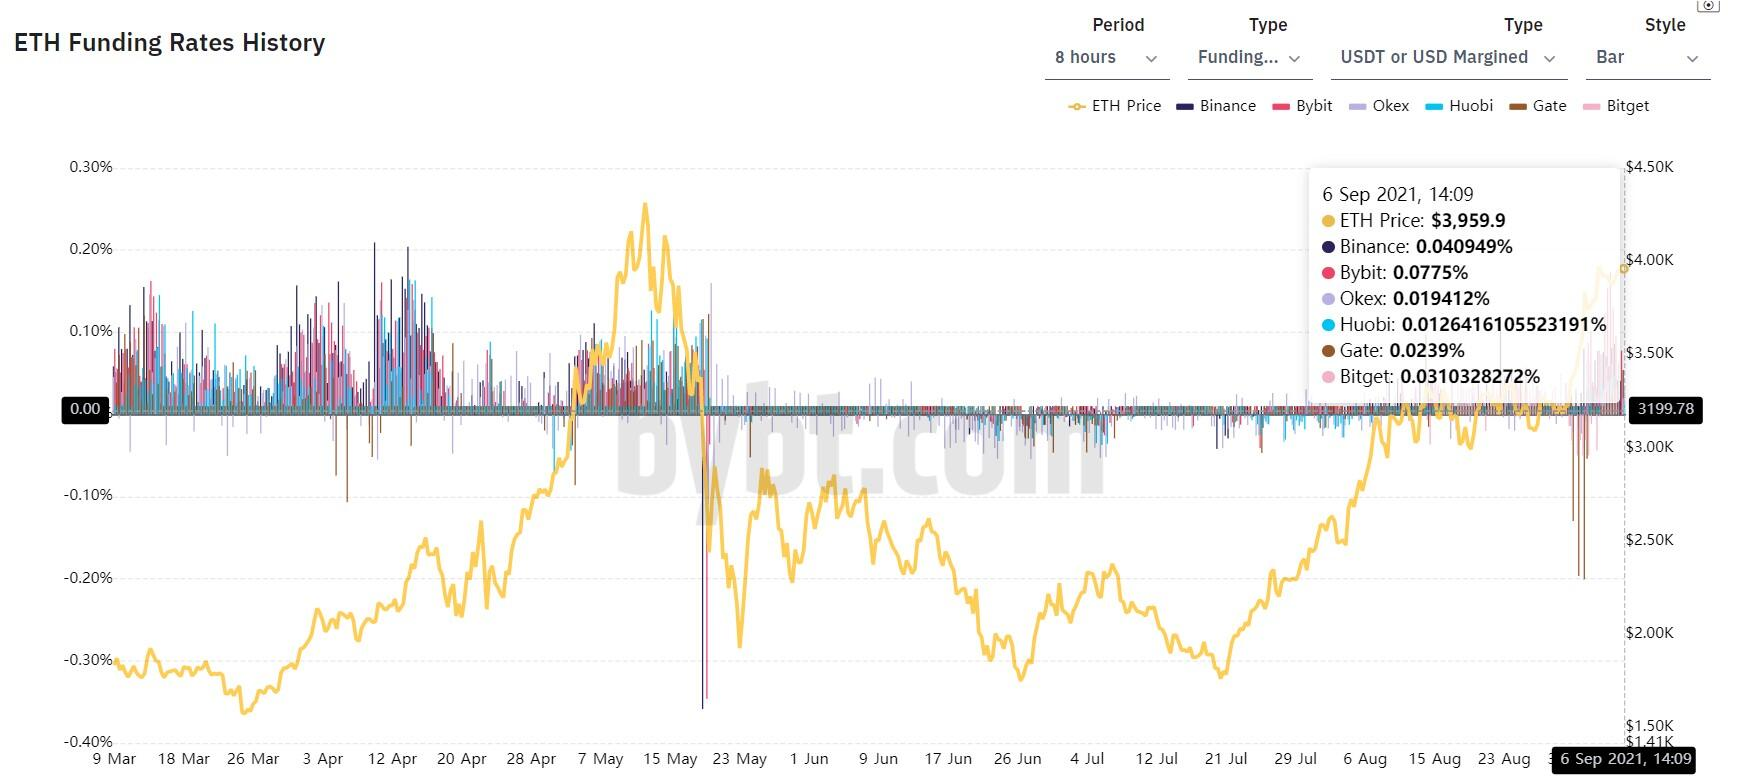 ETH funding rate chart